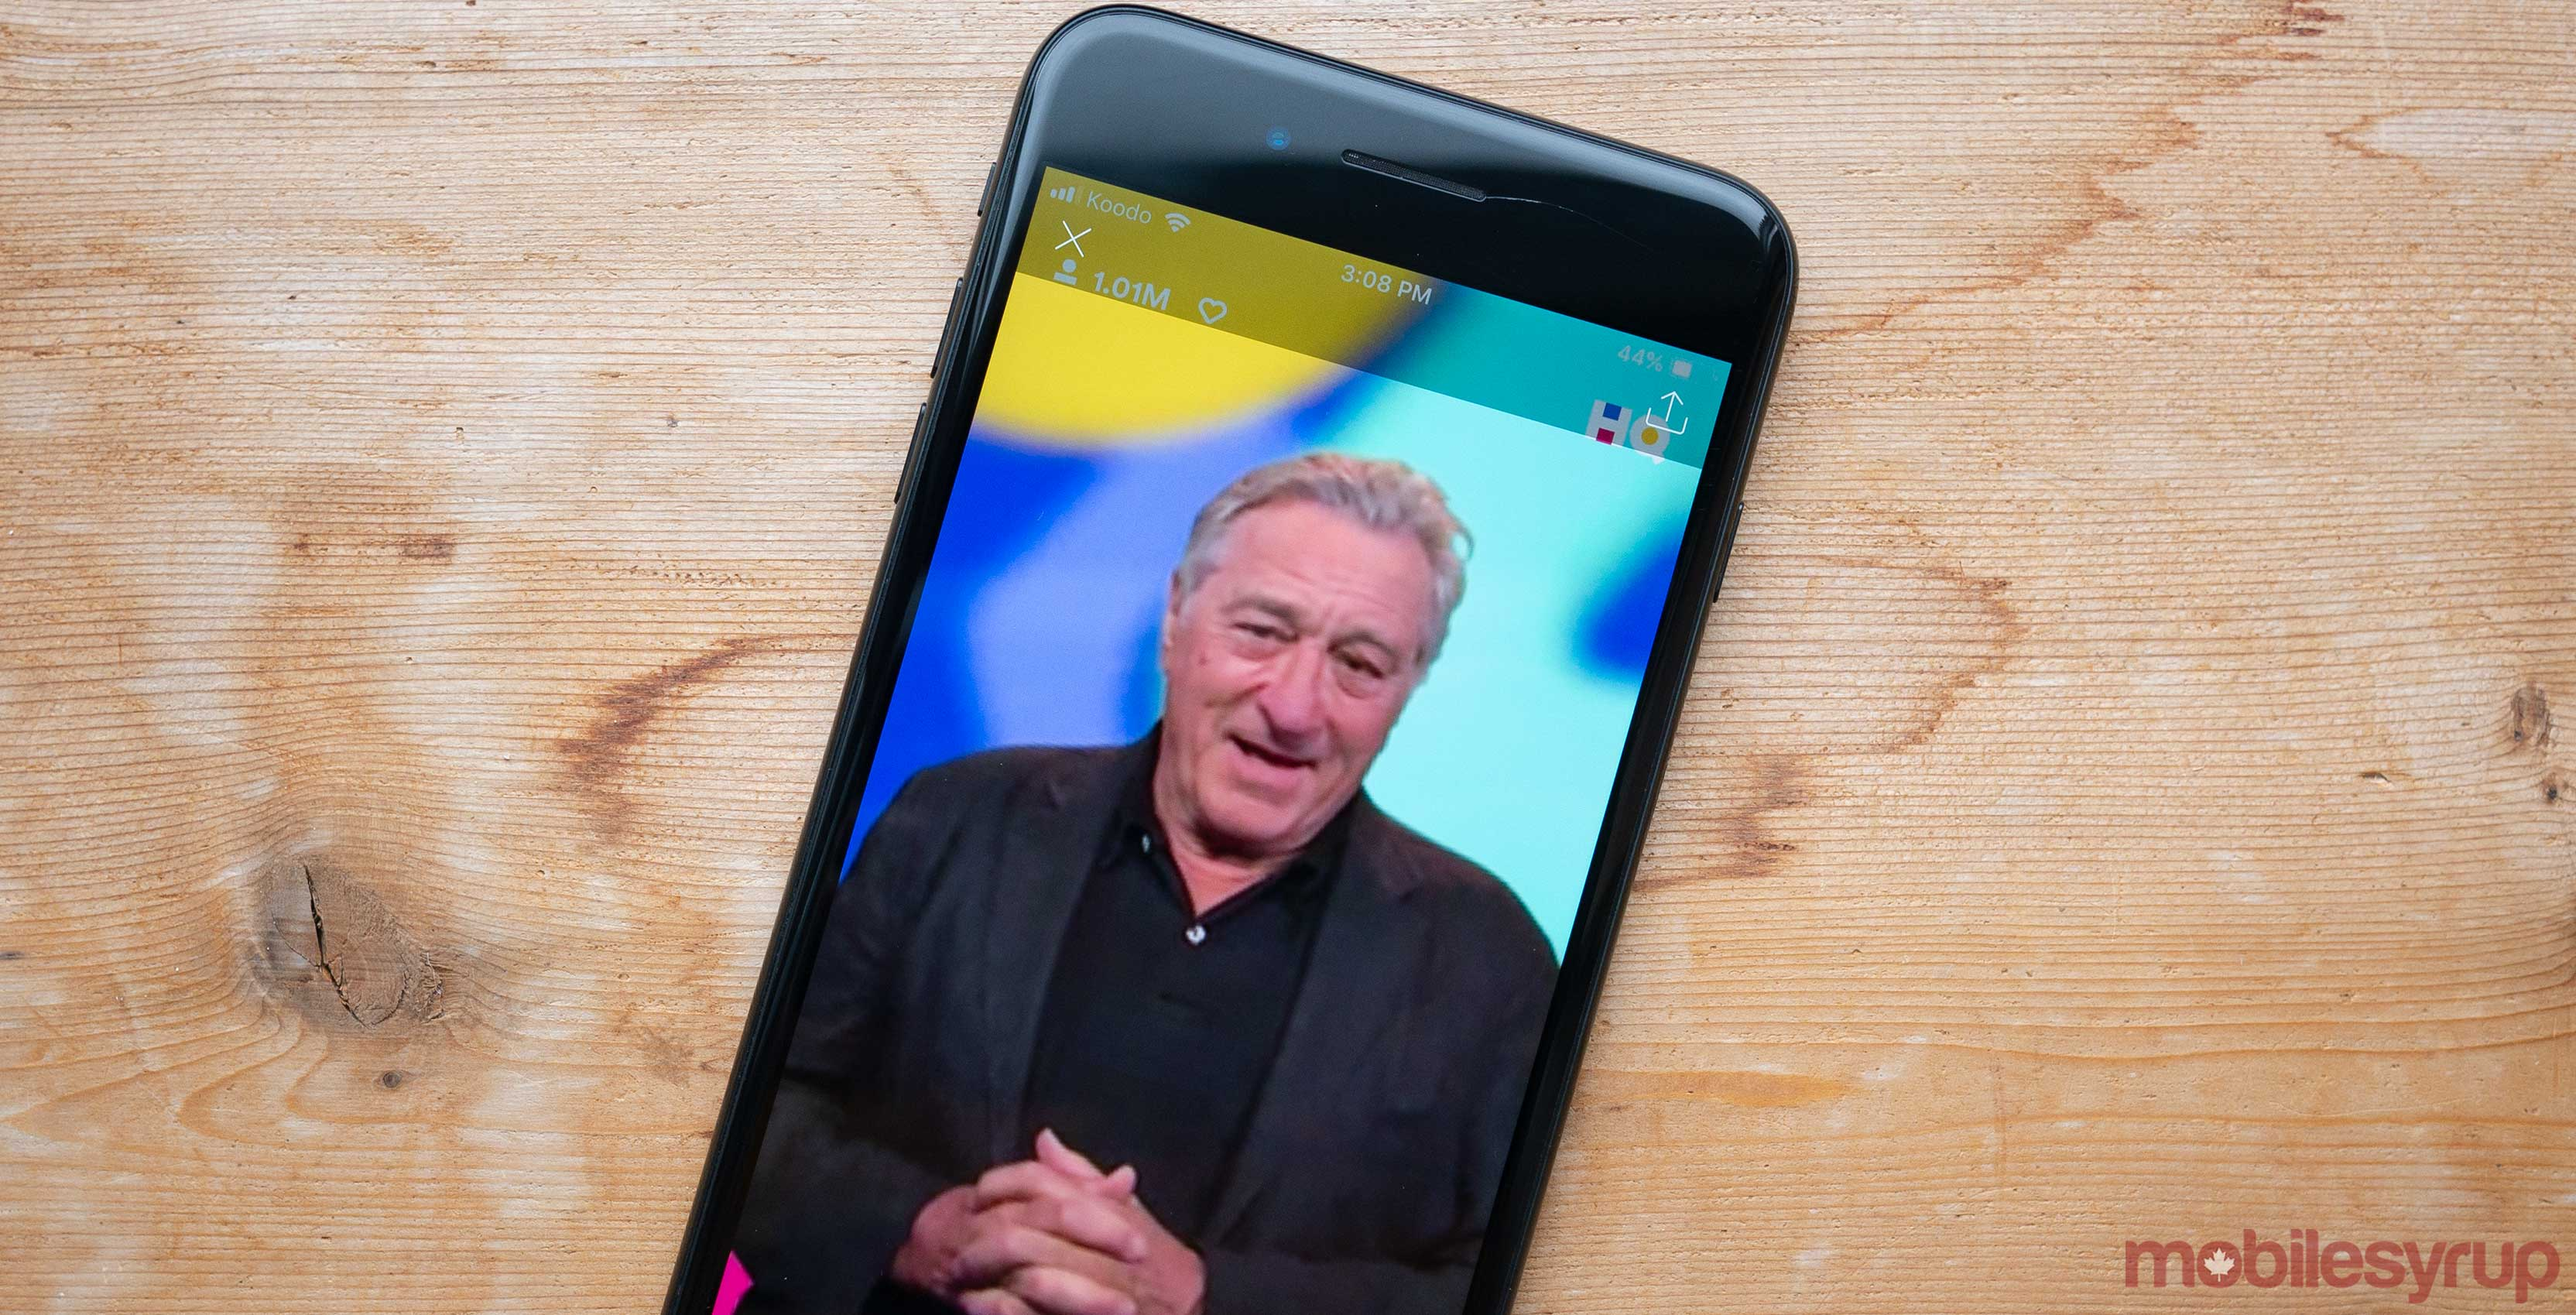 HQ Trivia Robert De Niro screenshot